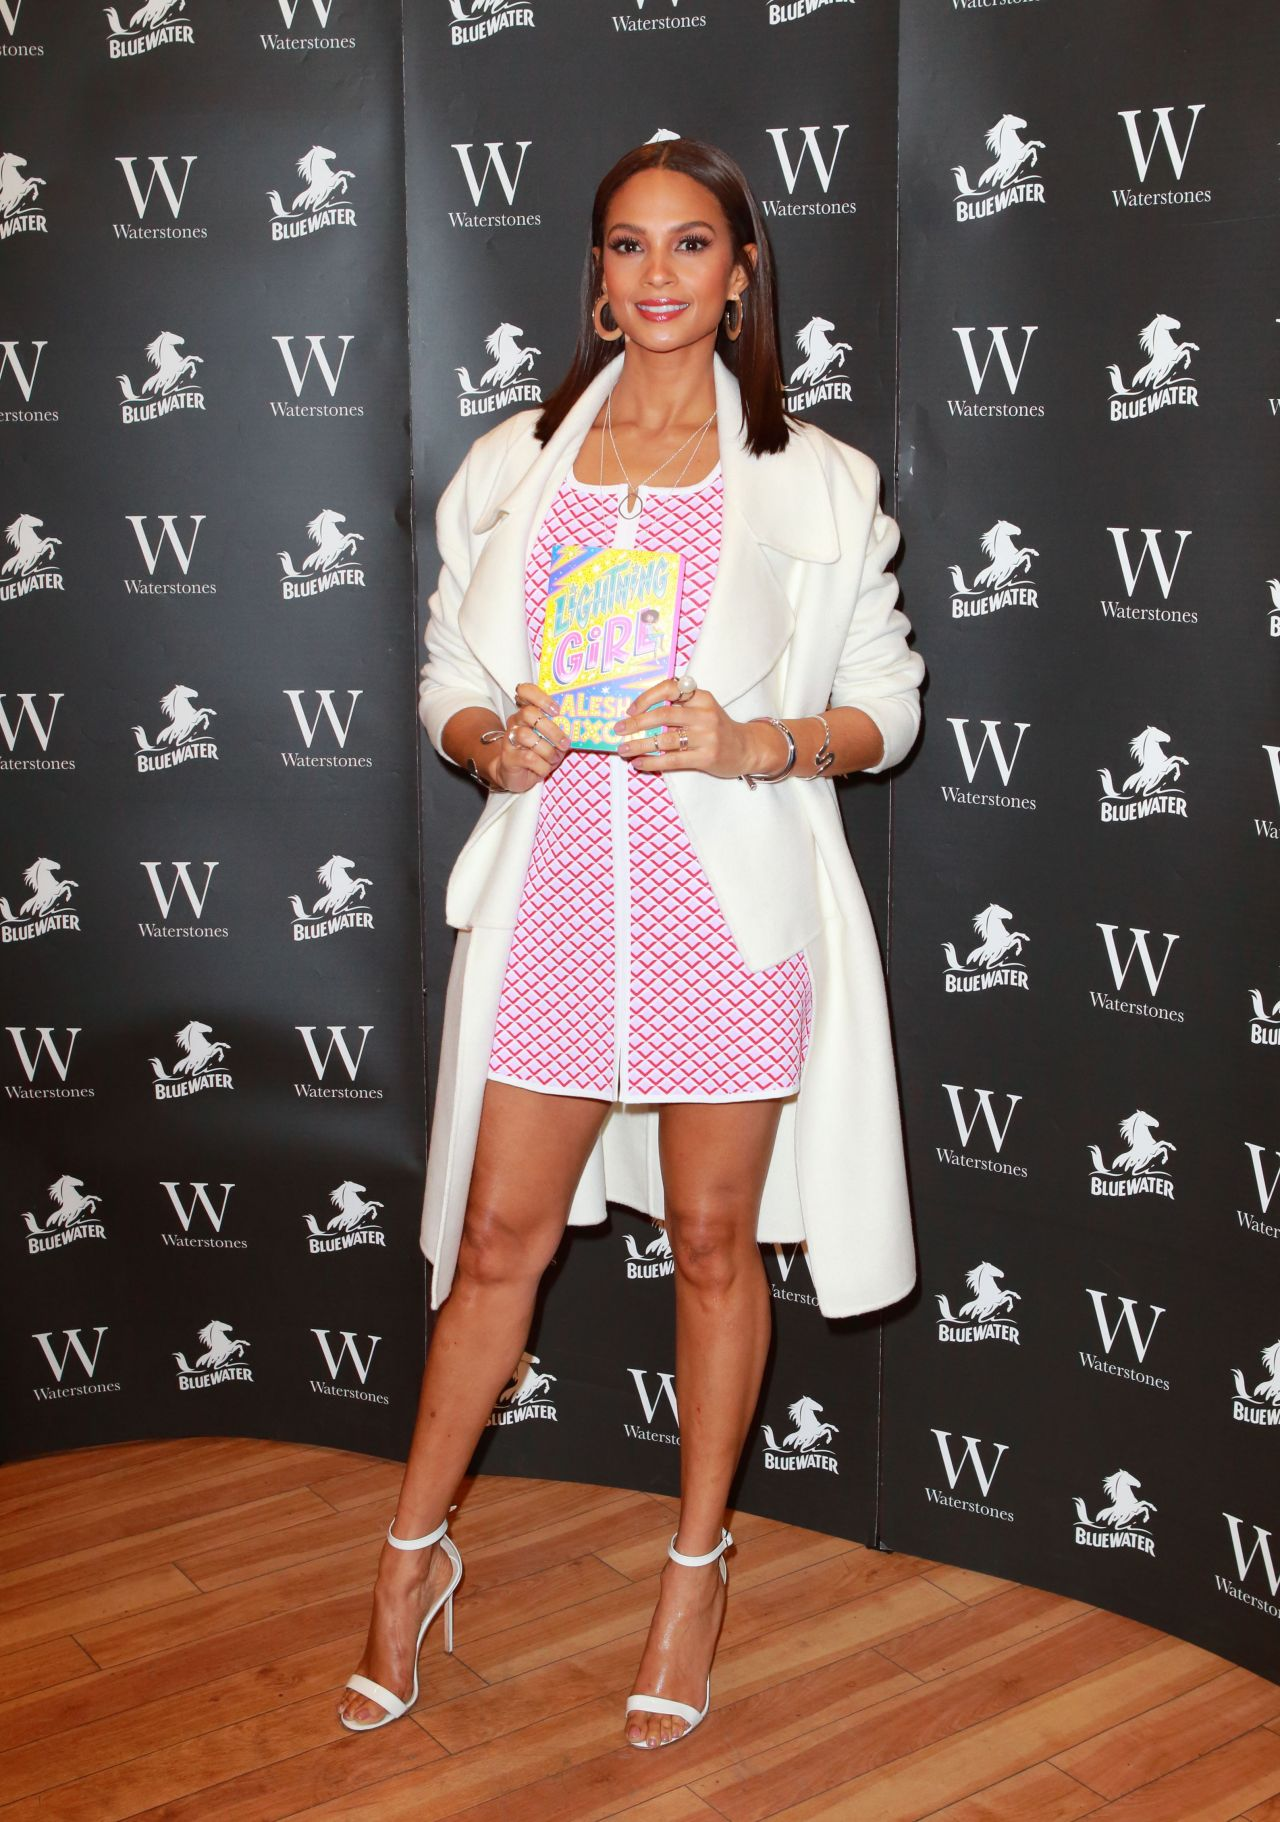 68428851_alesha-dixon-lightning-girl-book-signing-in-dartford-06-04-2018-7x_05.jpg